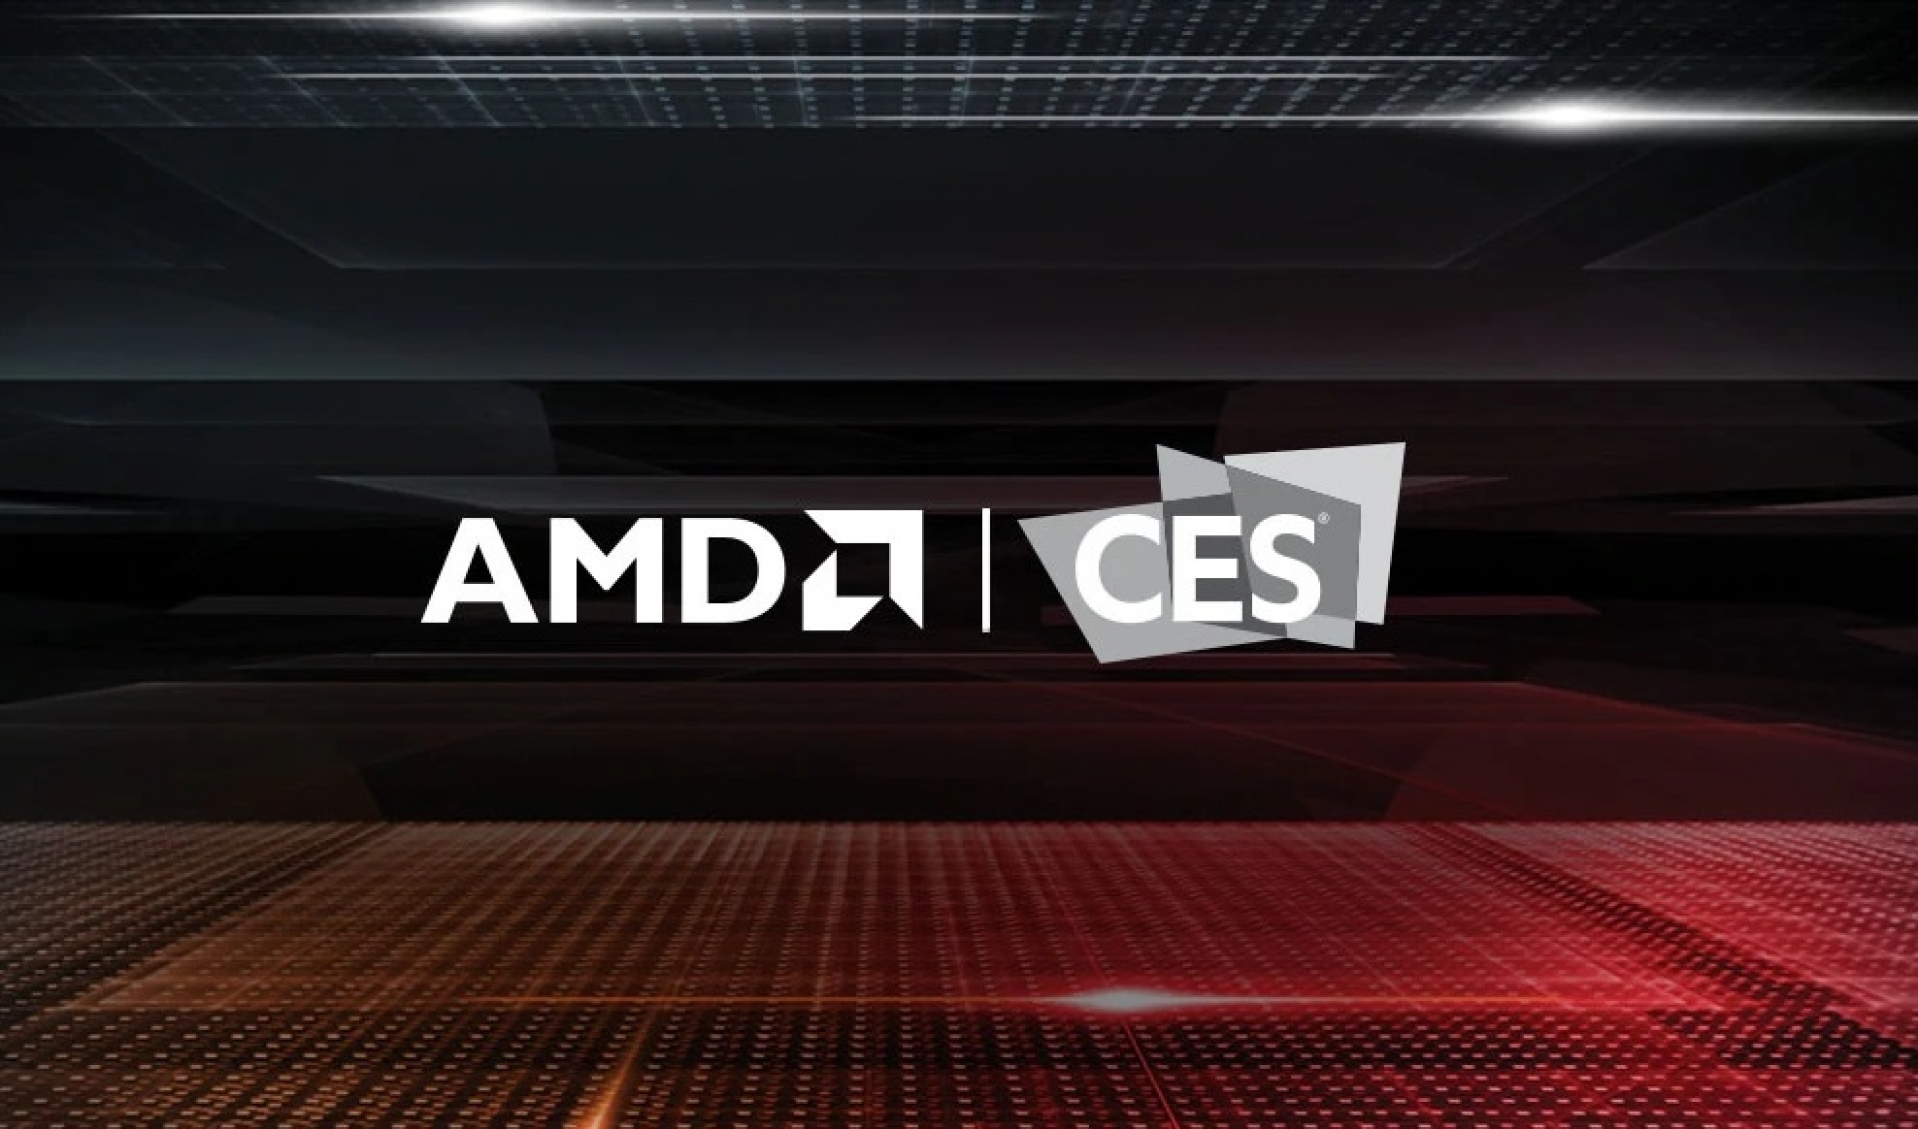 AMD will host one of CES 2021's premier keynotes | OC3D News